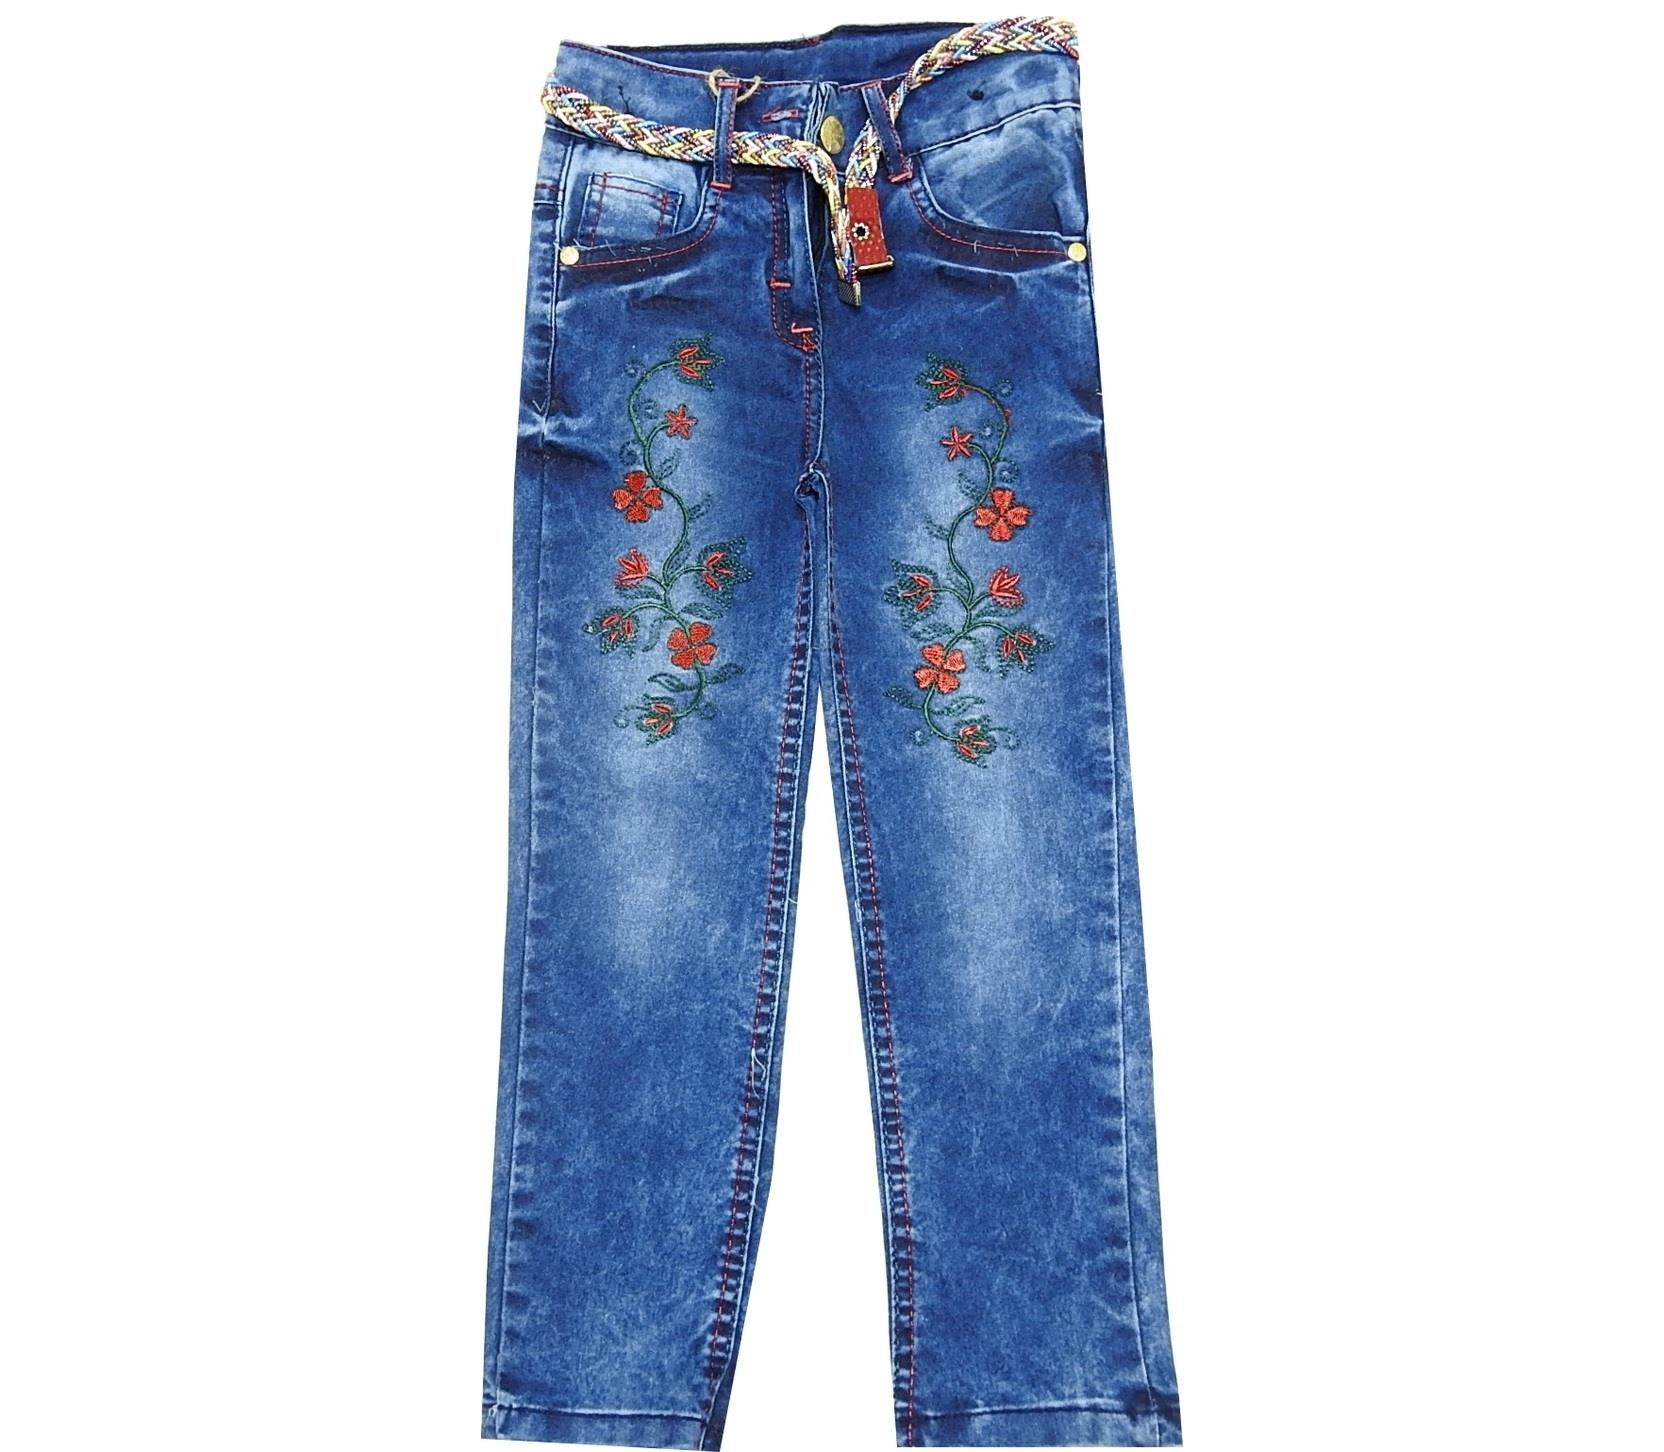 FLOWERY AND CRYSTALL ROCK EMBROIDERY DEIGNED JEANS FOR GIRL (3-4-5-6-7-8)